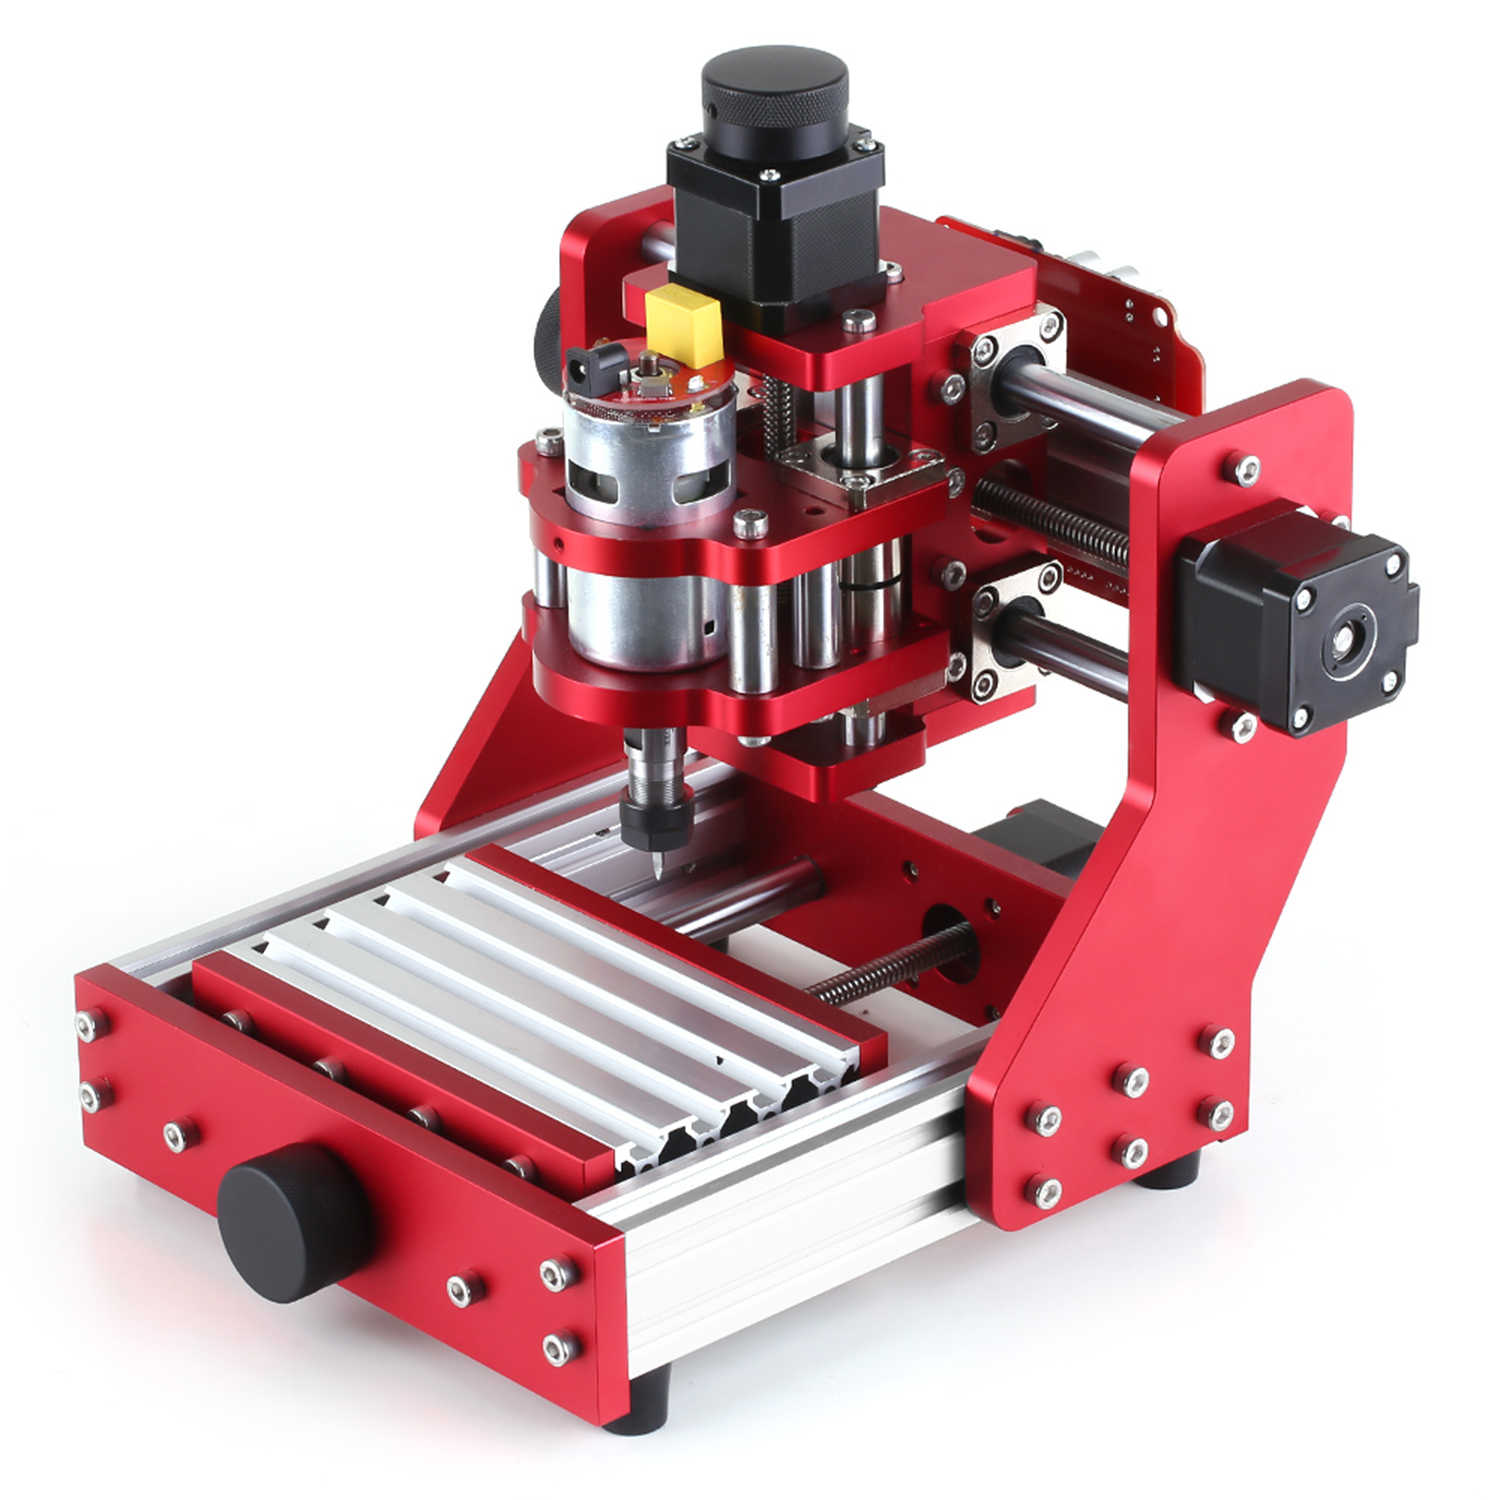 Engraver Laser Machine Engraver with ER11 Collet Mini CNC Router 1310 CNC Metal Engraving Milling Machine Kit PCB Wood Milling